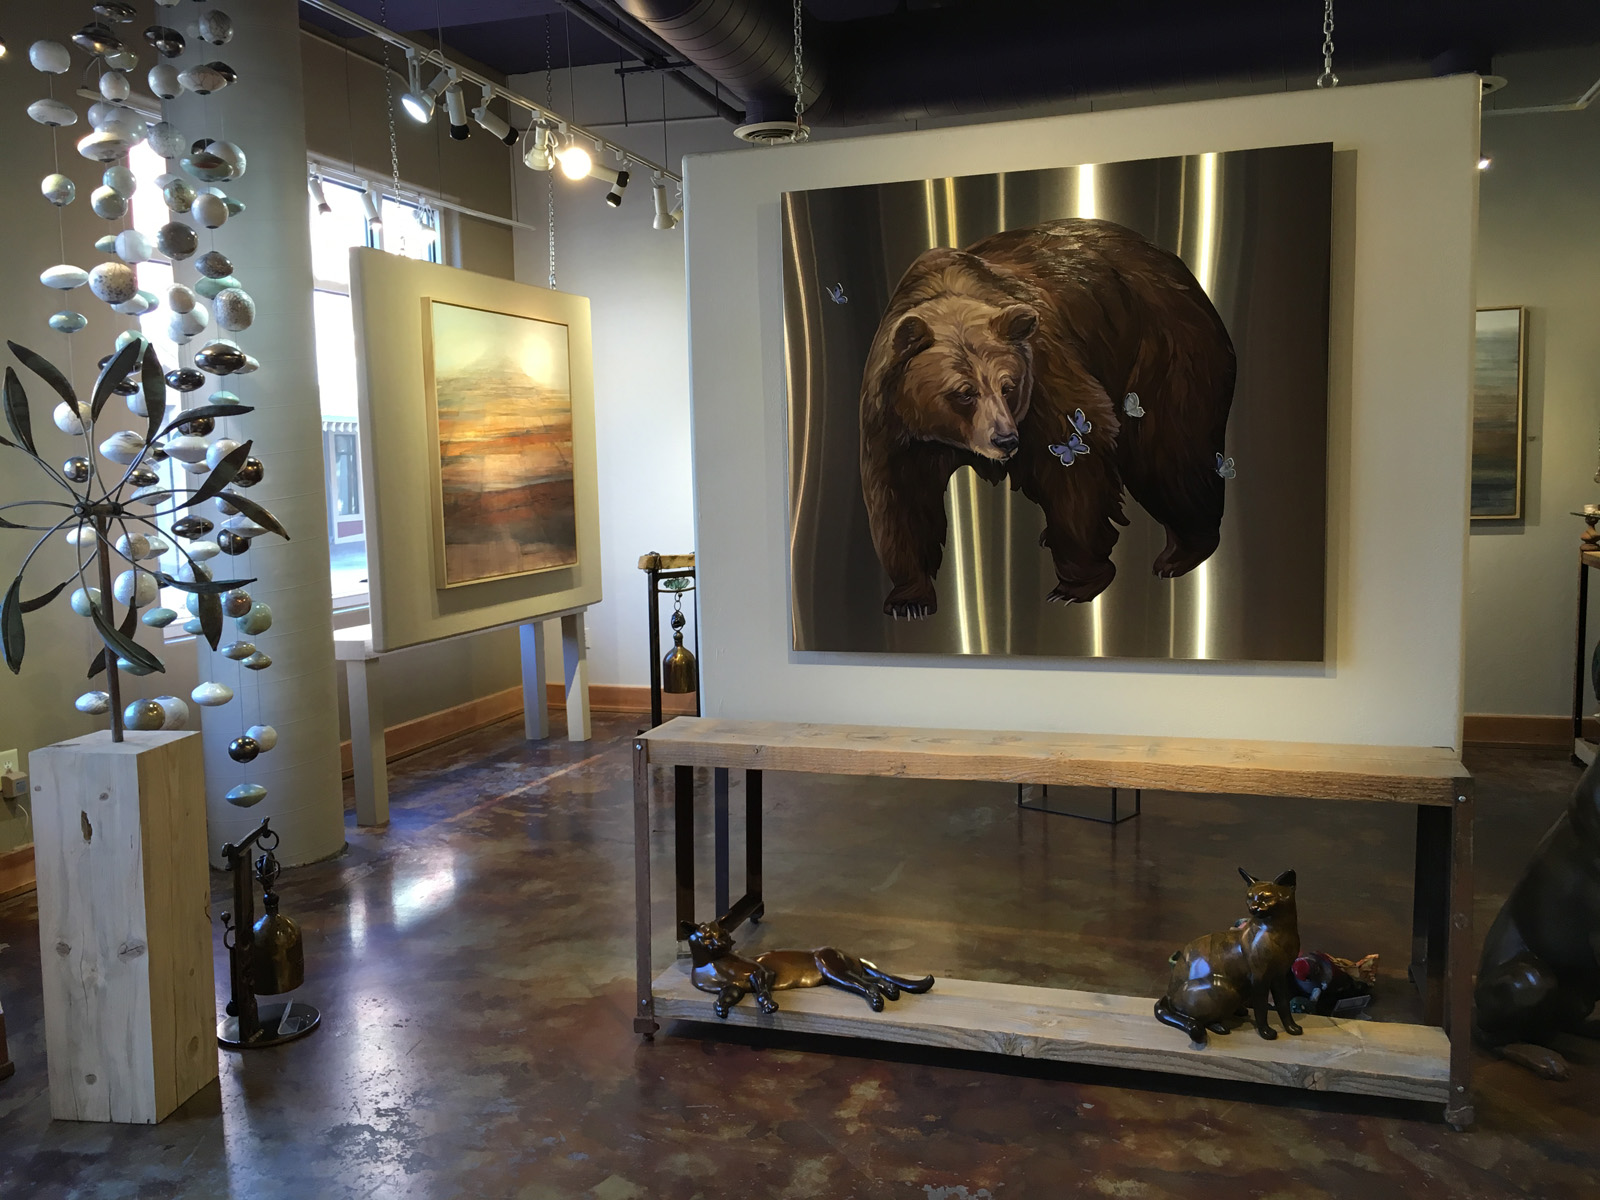 Bear Dance available at Trove Gallery, Park City, UT